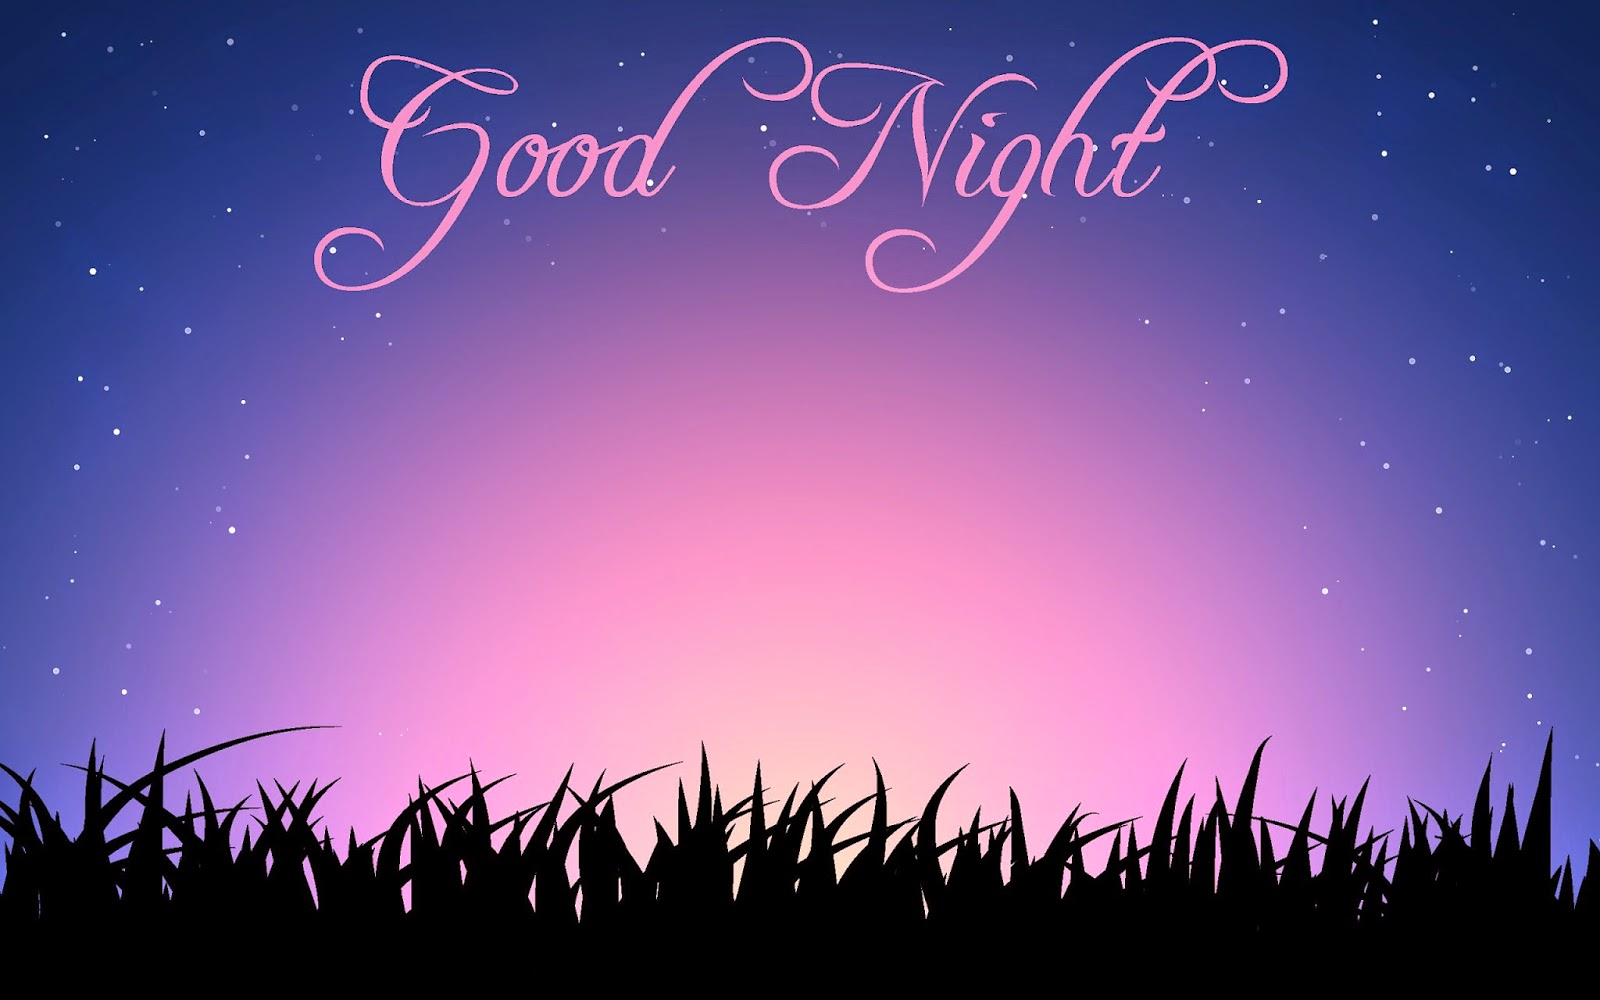 Wallpaper download good night - Lovely Good Night Wallpaper